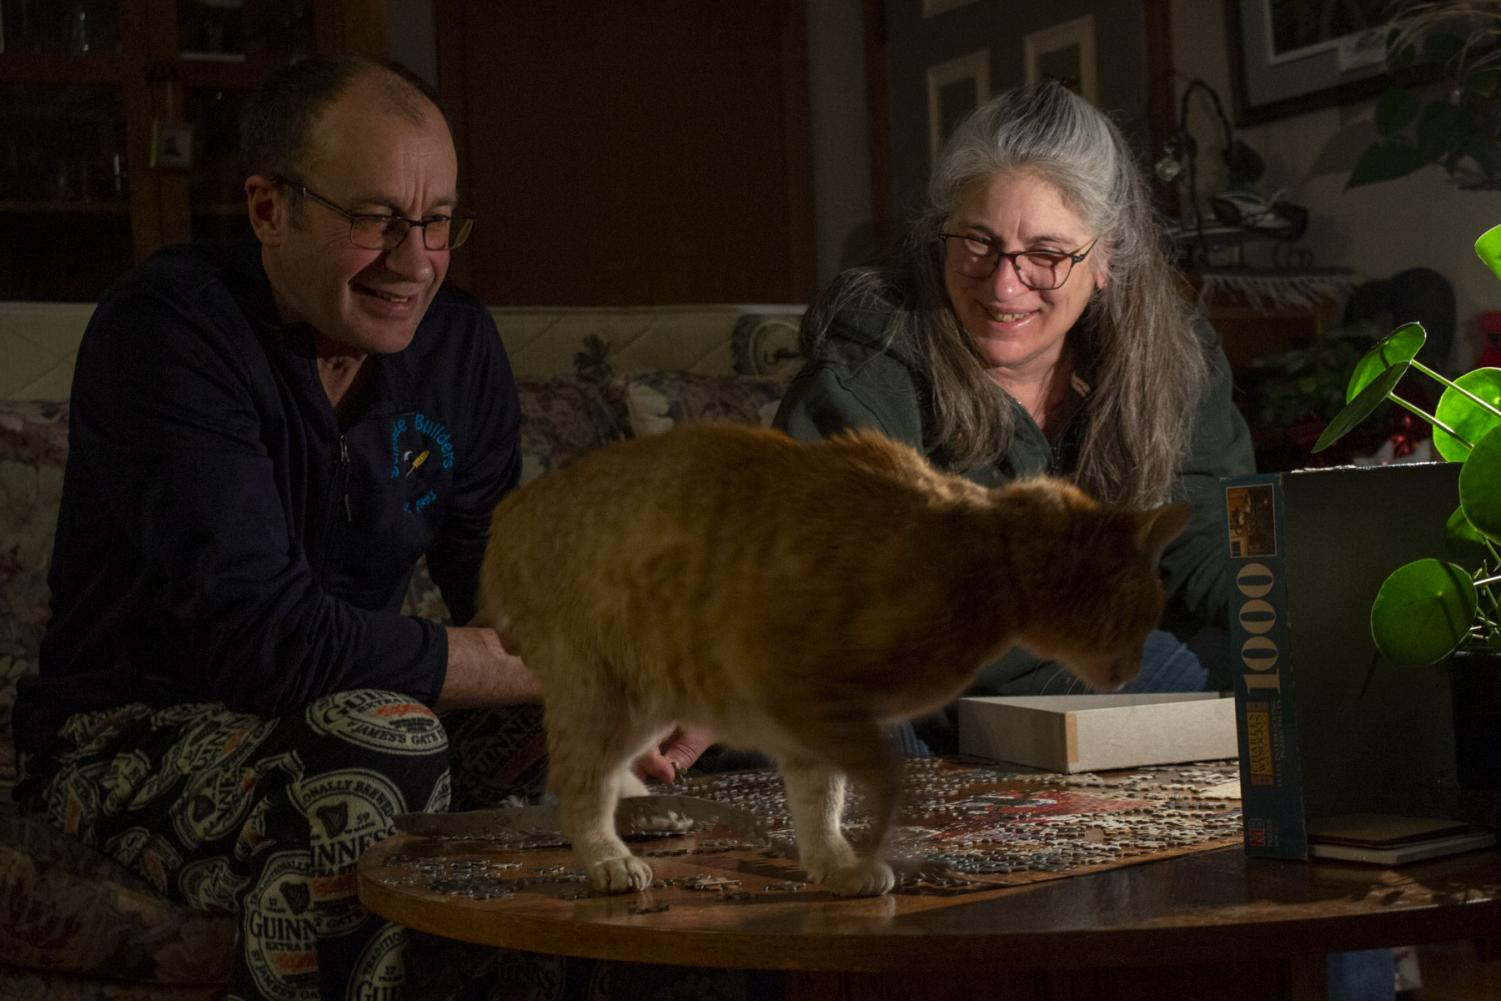 Mitch Scrage and Terese Brunner share a laugh over their cat Sully jumping on the table and on top of the puzzle they started together on April 6, 2020 at their home in New Holstein, Wis. Throughout the uncertainty of shelter in place orders Brunner and Schrage have been enjoying the extra time together.